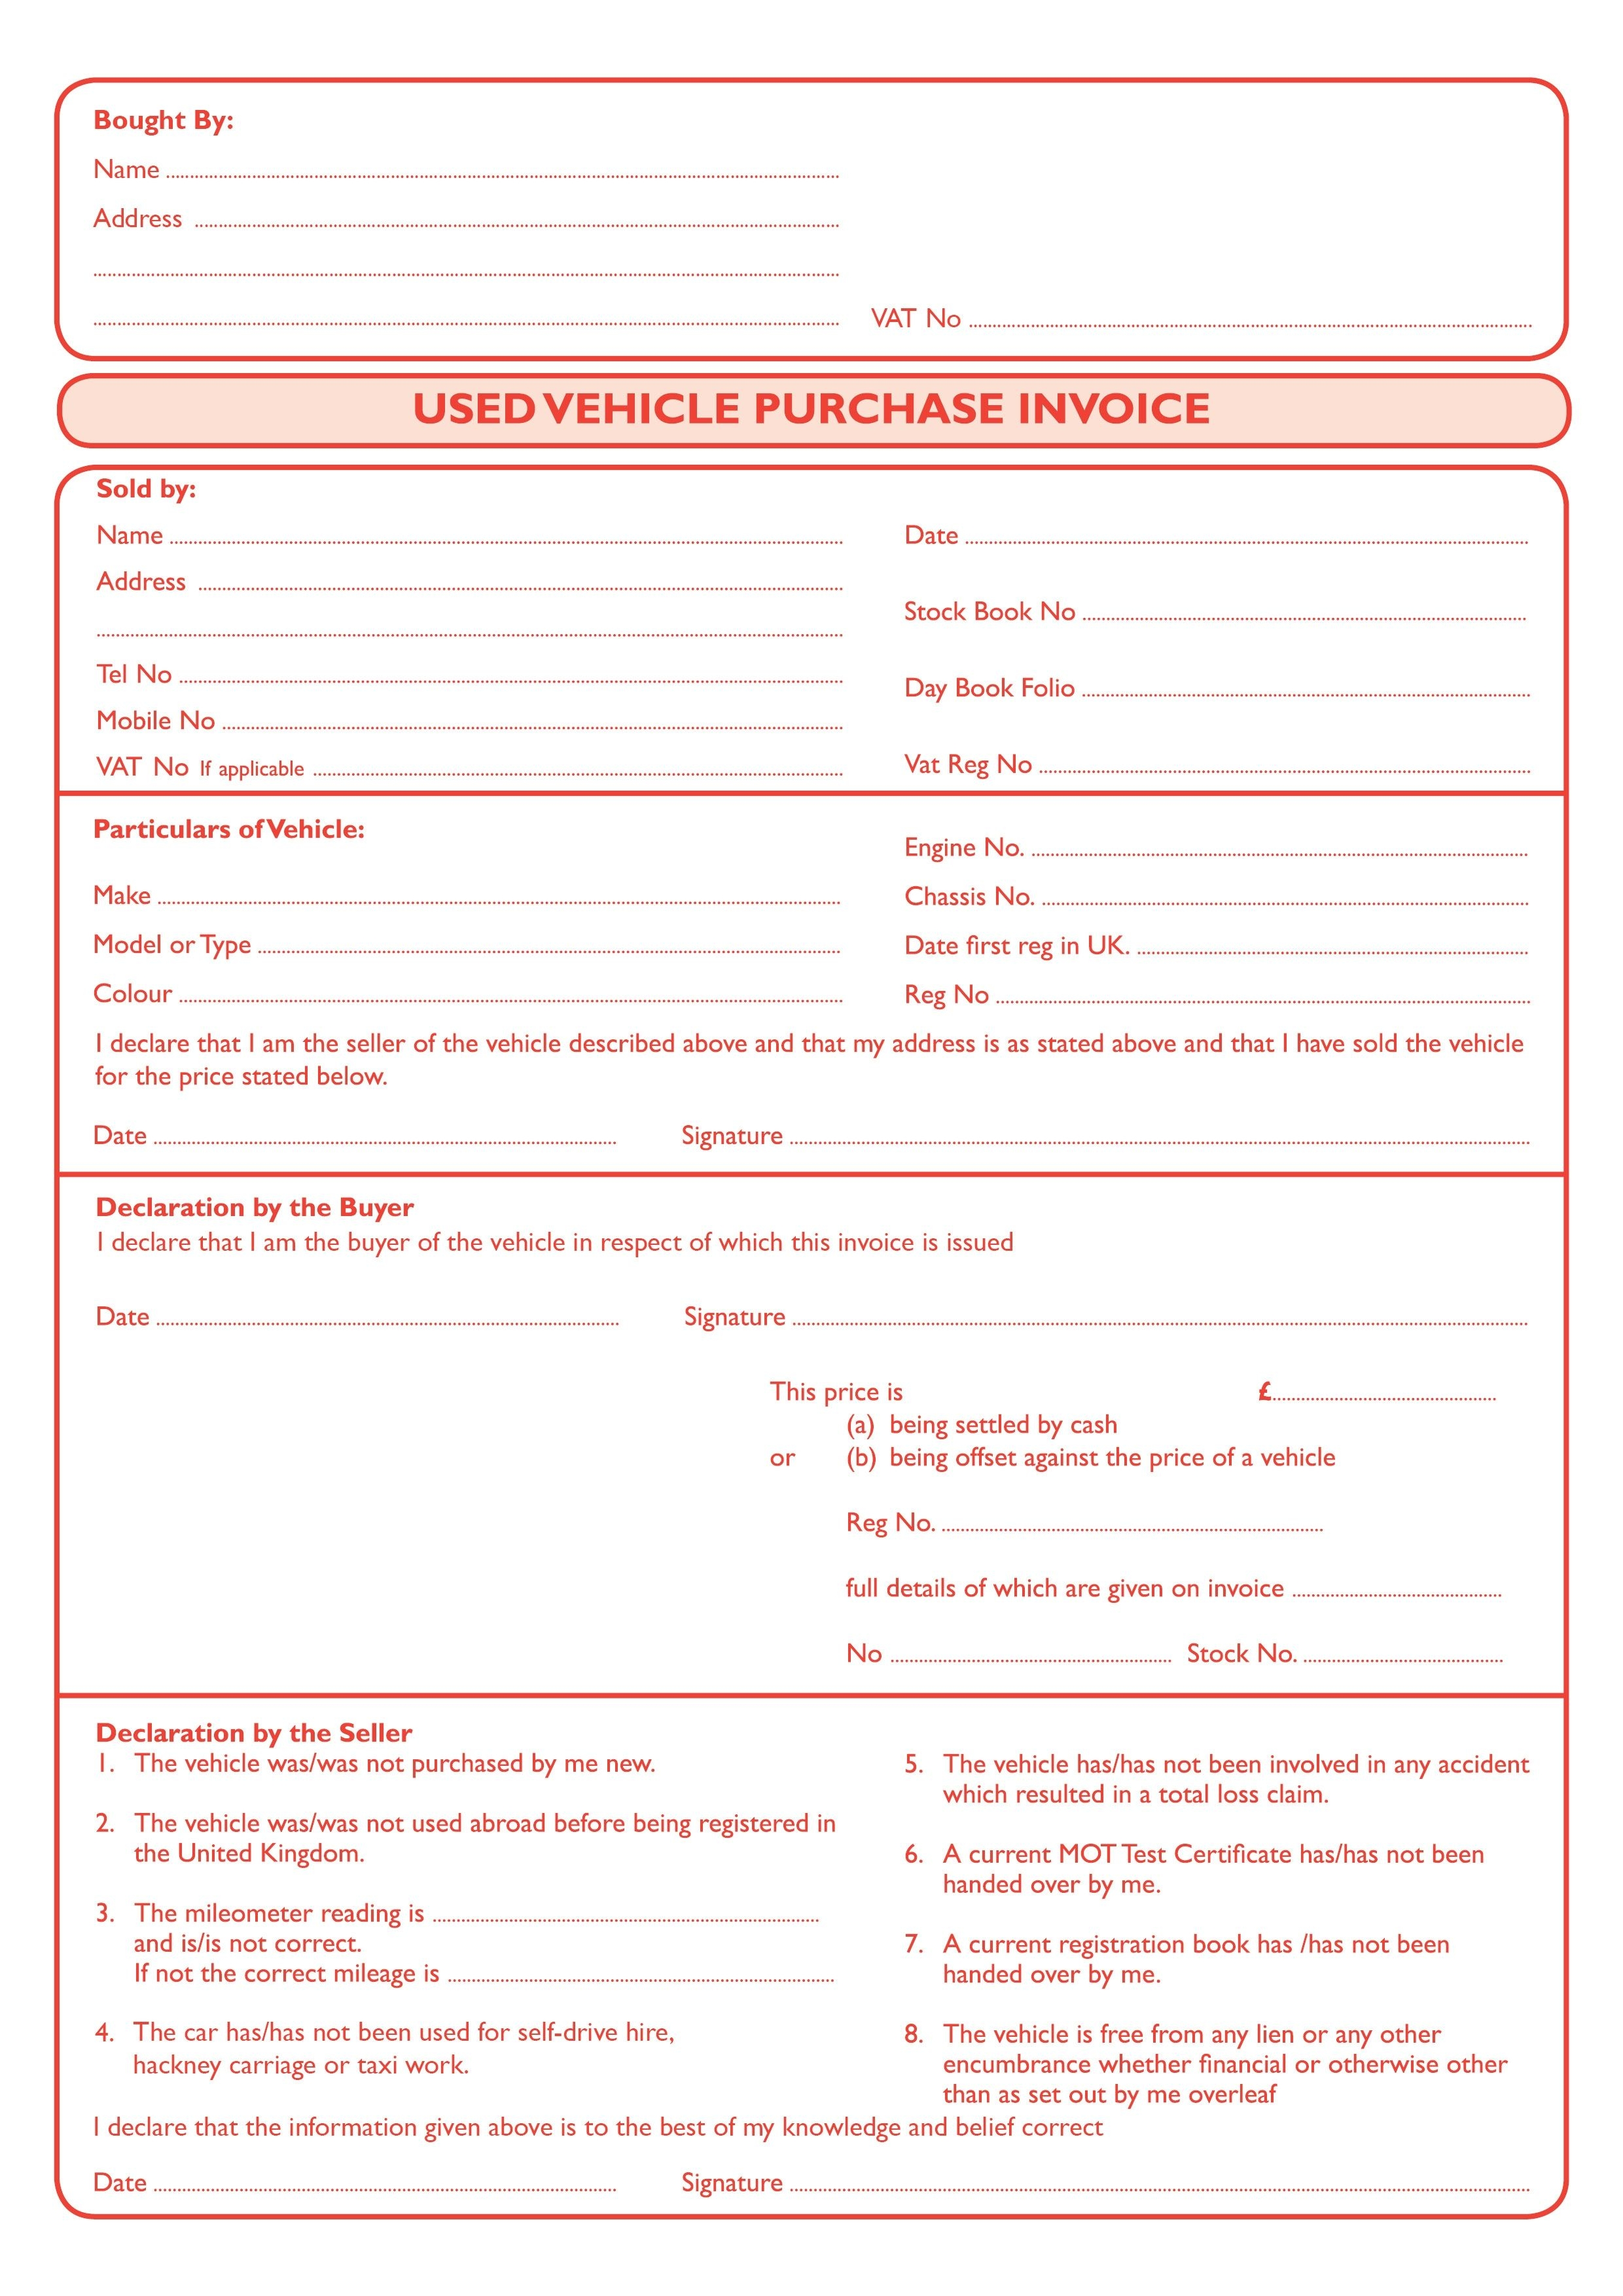 bristol based suppliers of printed stationery for all used car sales receipt template uk